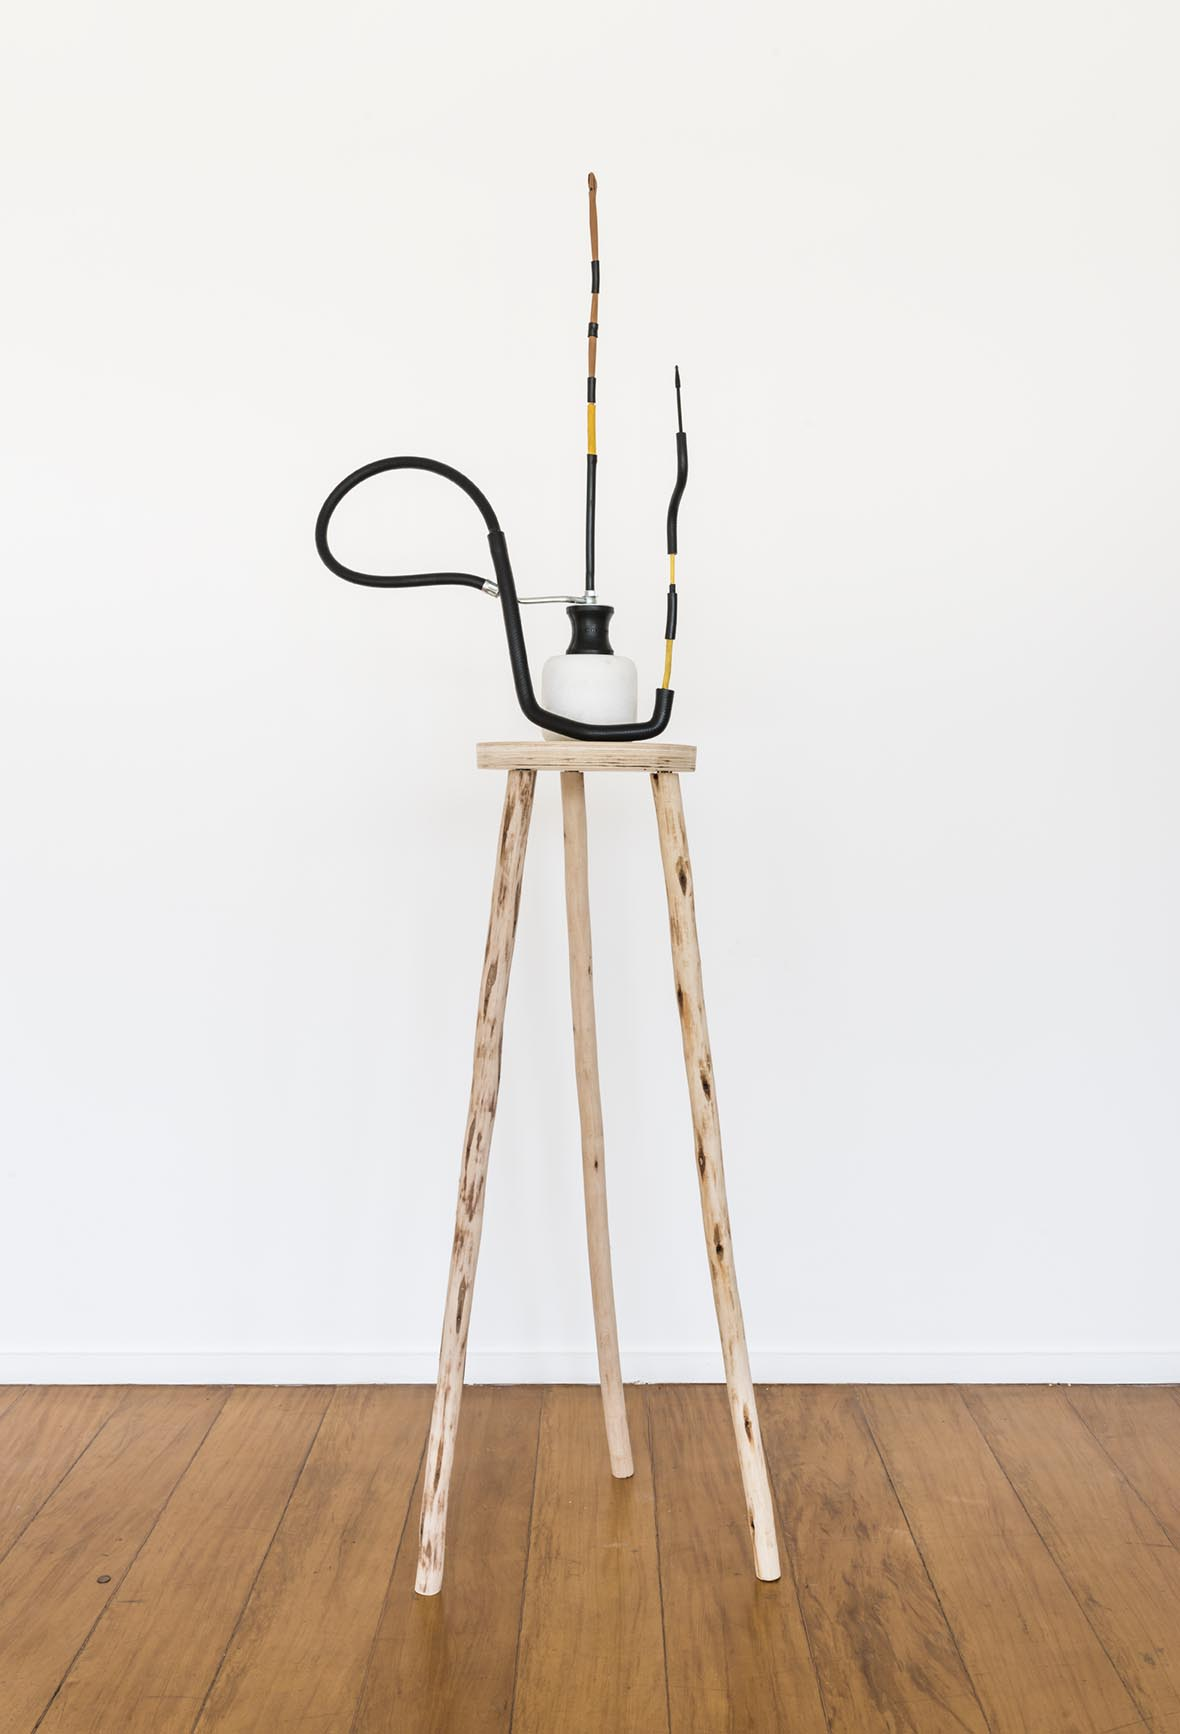 Claudio Cretti  Sem título  | Untitled,  2017 Mármore, madeira, borracha, metal e piteira |  Marble, wood, rubber, metal and cigarette holder  ,  206 x 54 x 42 cm